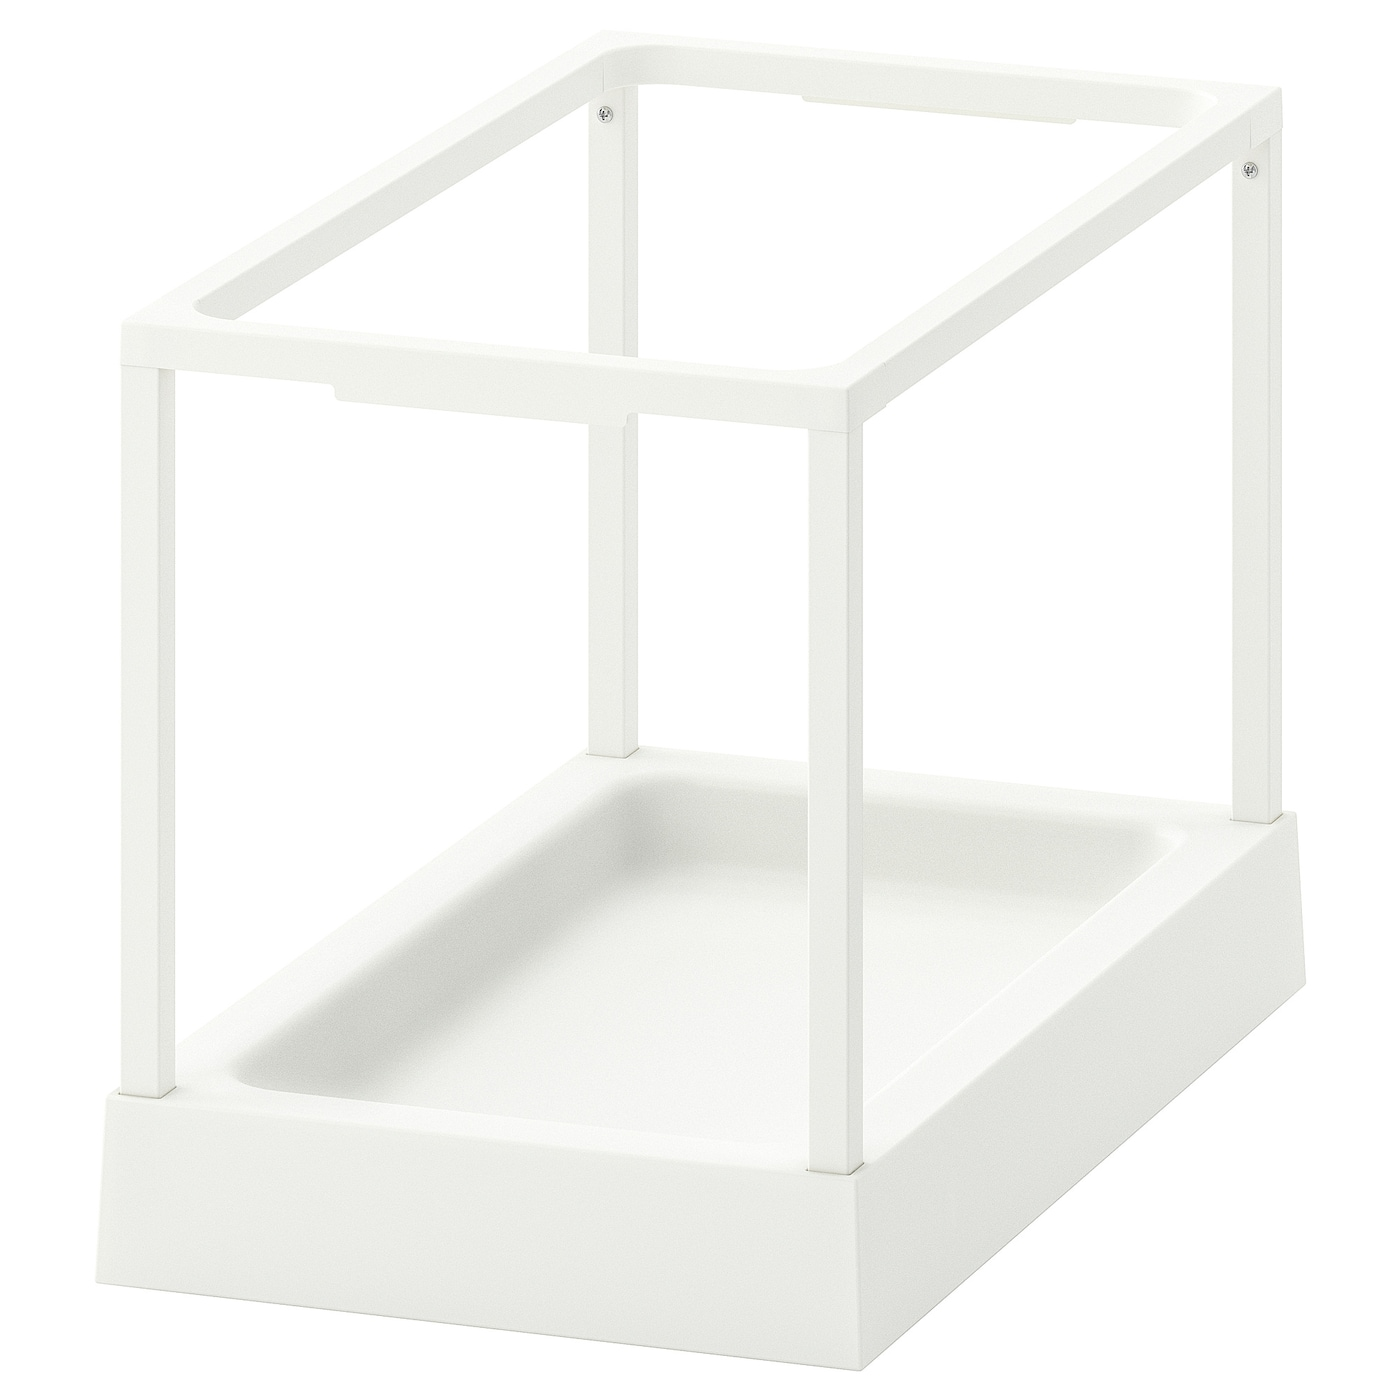 IKEA UTRUSTA pull-out waste sorting tray